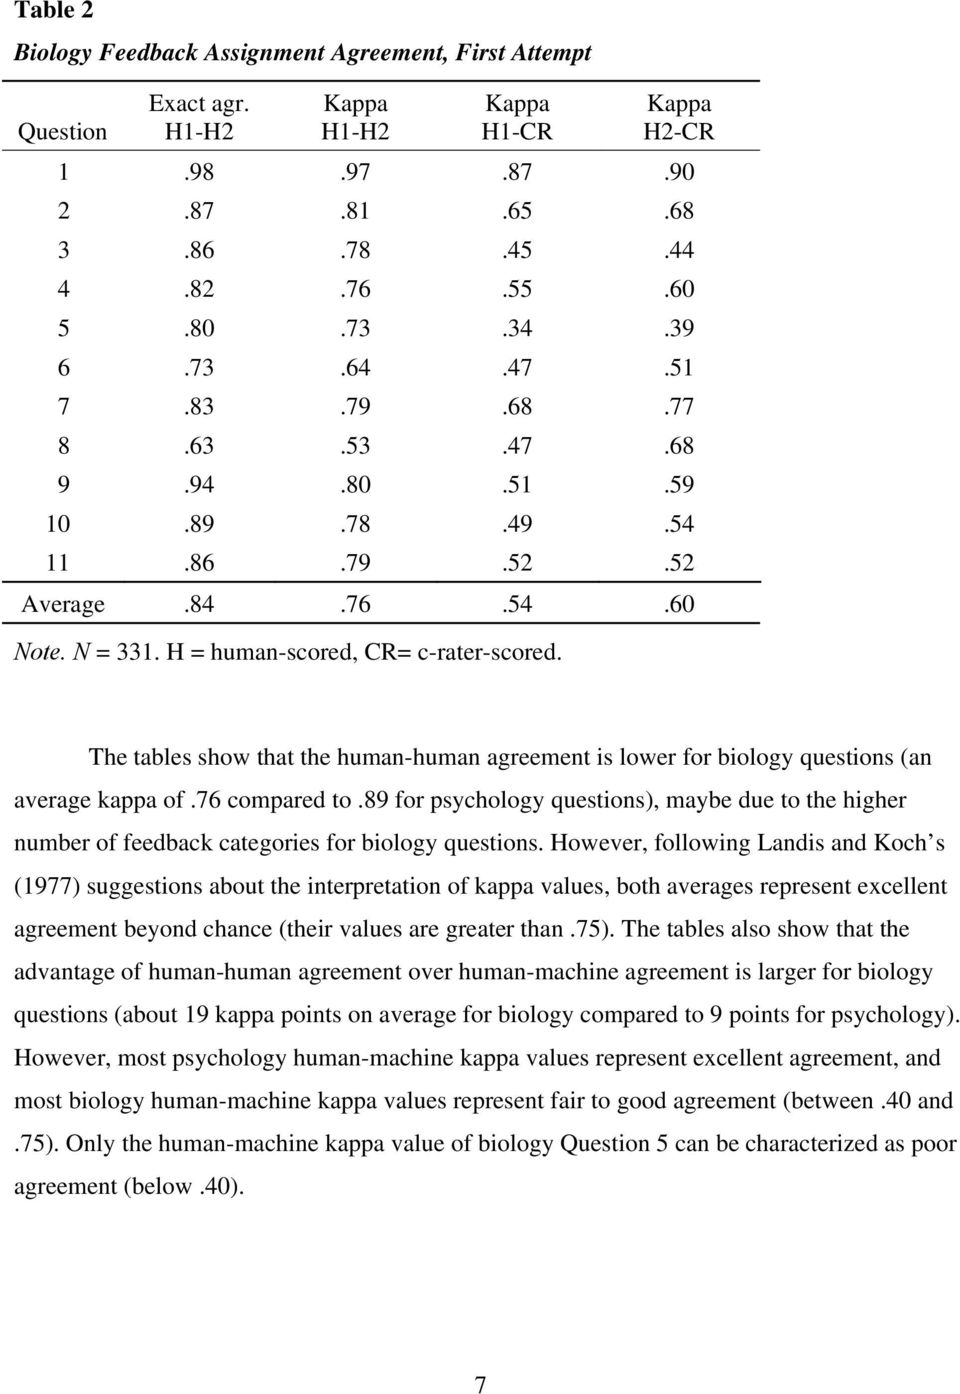 The tables show that the human-human agreement is lower for biology questions (an average kappa of.76 compared to.